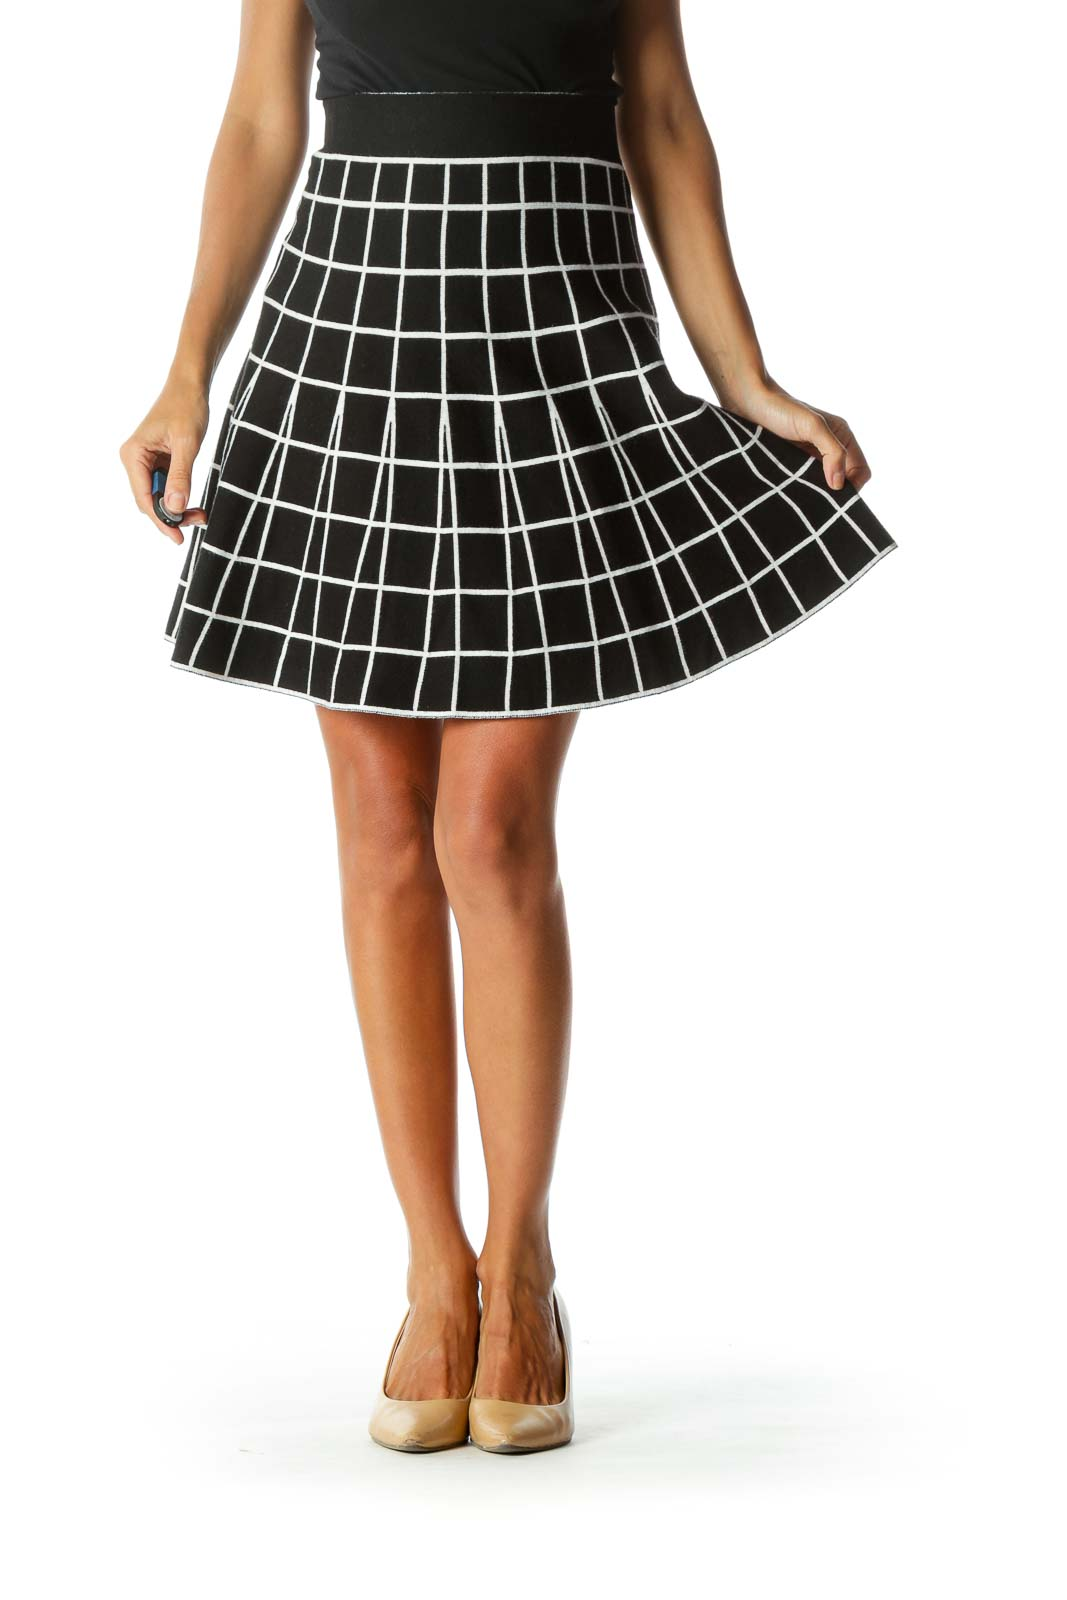 803b7c481340 Shop Black White Grid Print Elastic Waist Band Flared Knit Skirt ...